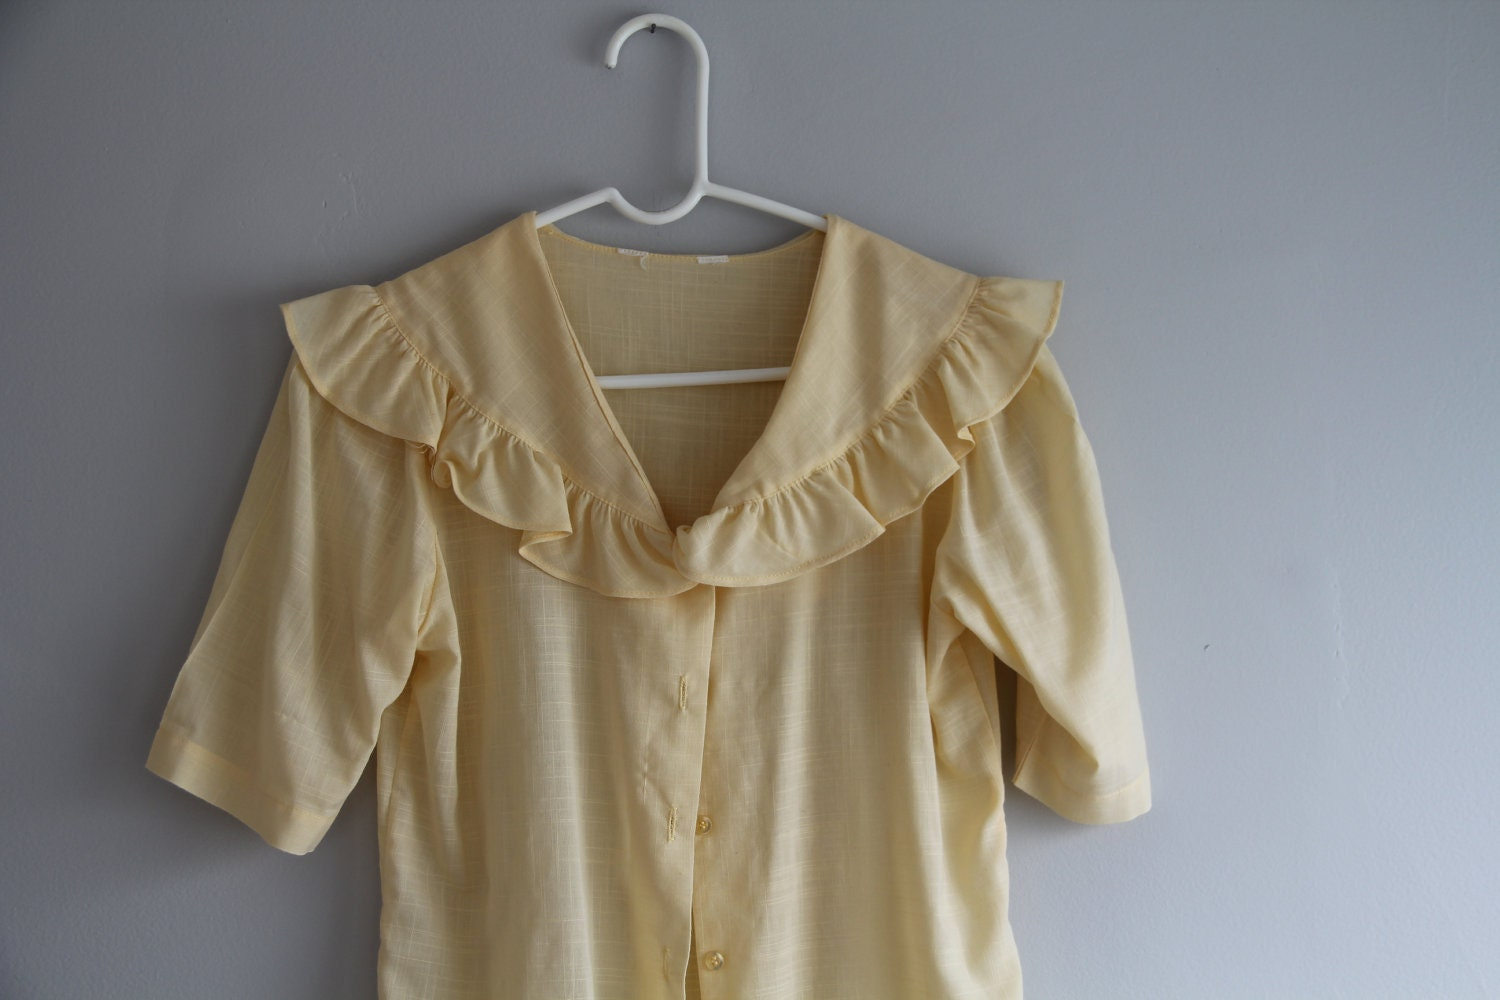 1980s Cream Sailor style blouse